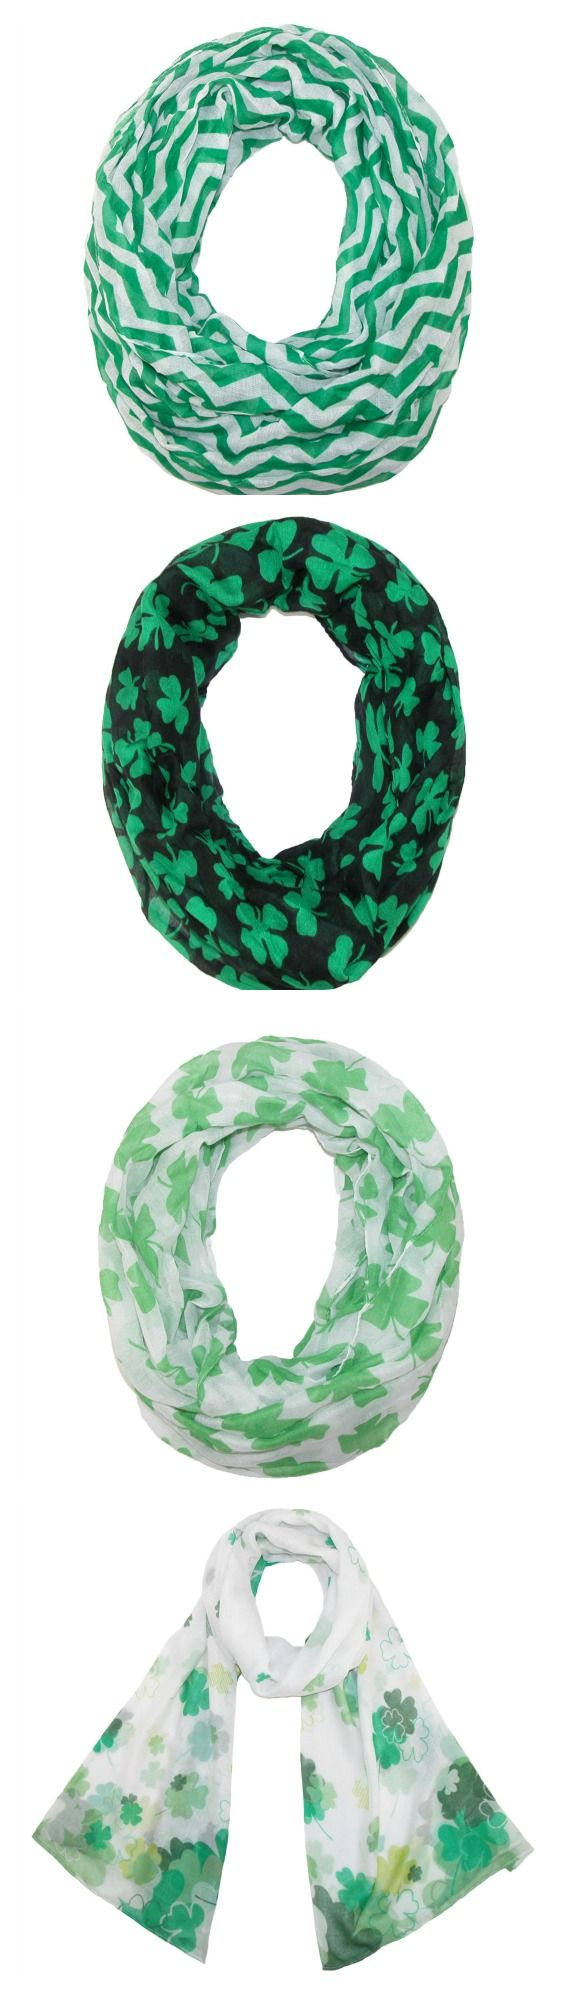 Show your Irish pride for St. Patrick's Day or accessorize an everyday look with these adorable festive scarves! You can never go wrong with shamrocks or chevron!